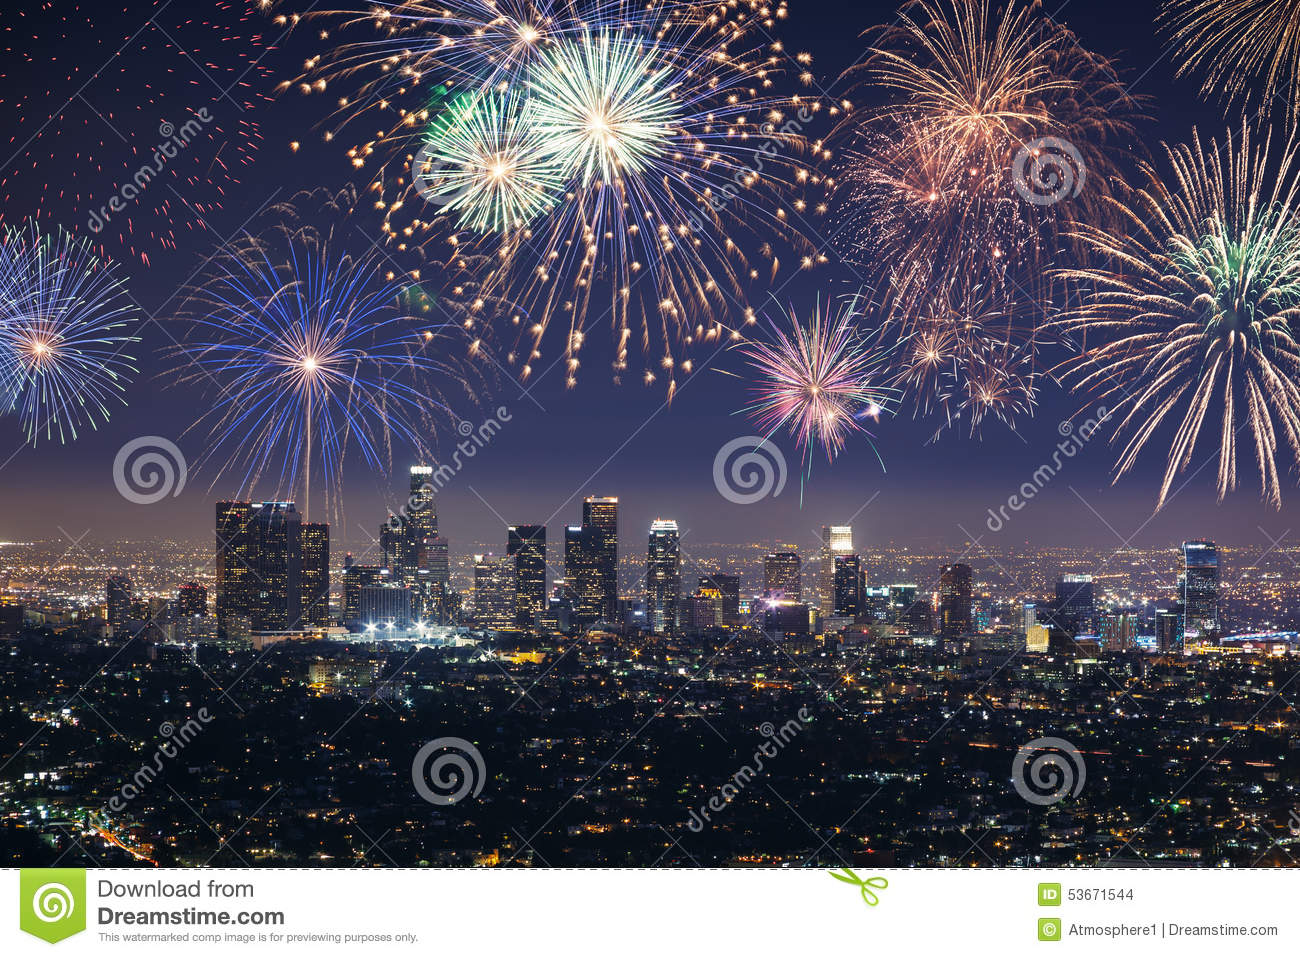 Downtown Los Angeles Cityscape With Fireworks Celebrating New Year's Eve. Stock Photo - Image of ...